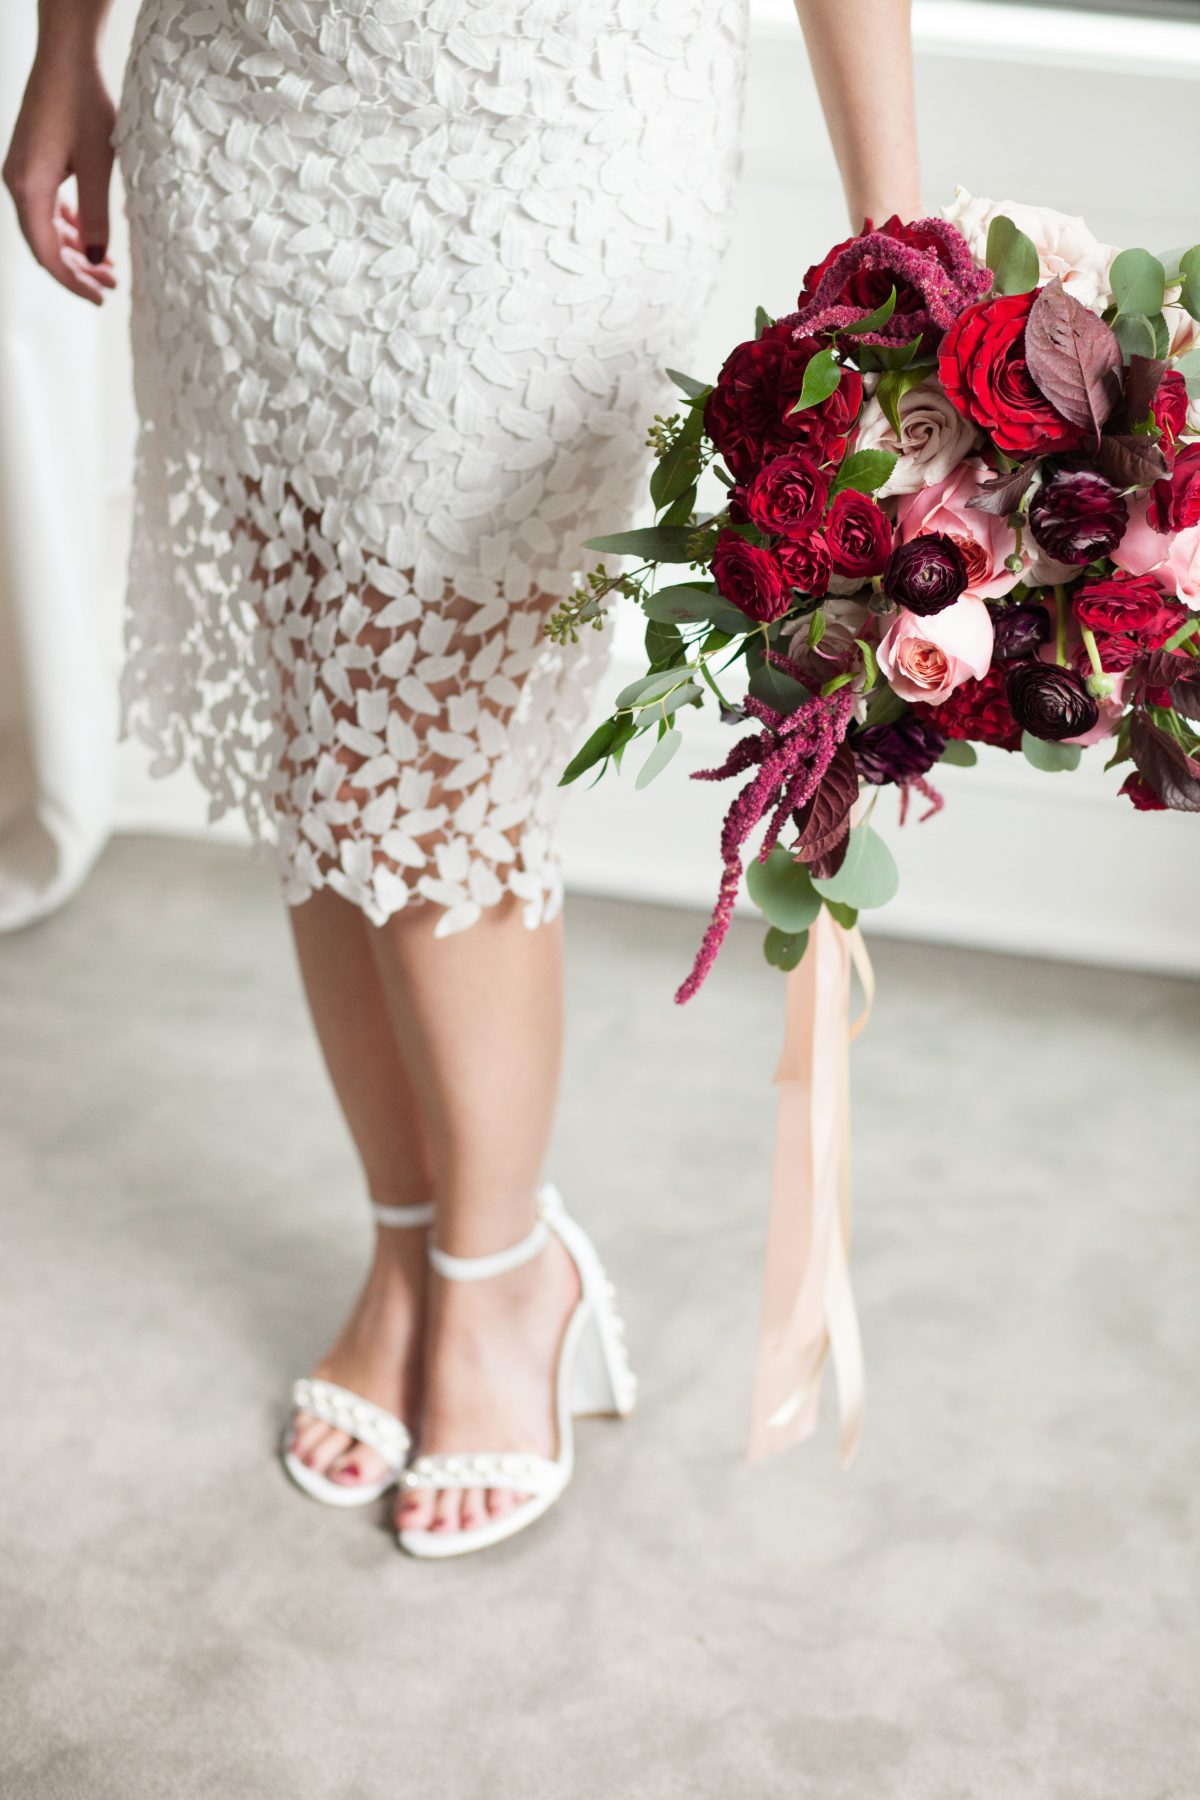 Bride with Berry Bouquet